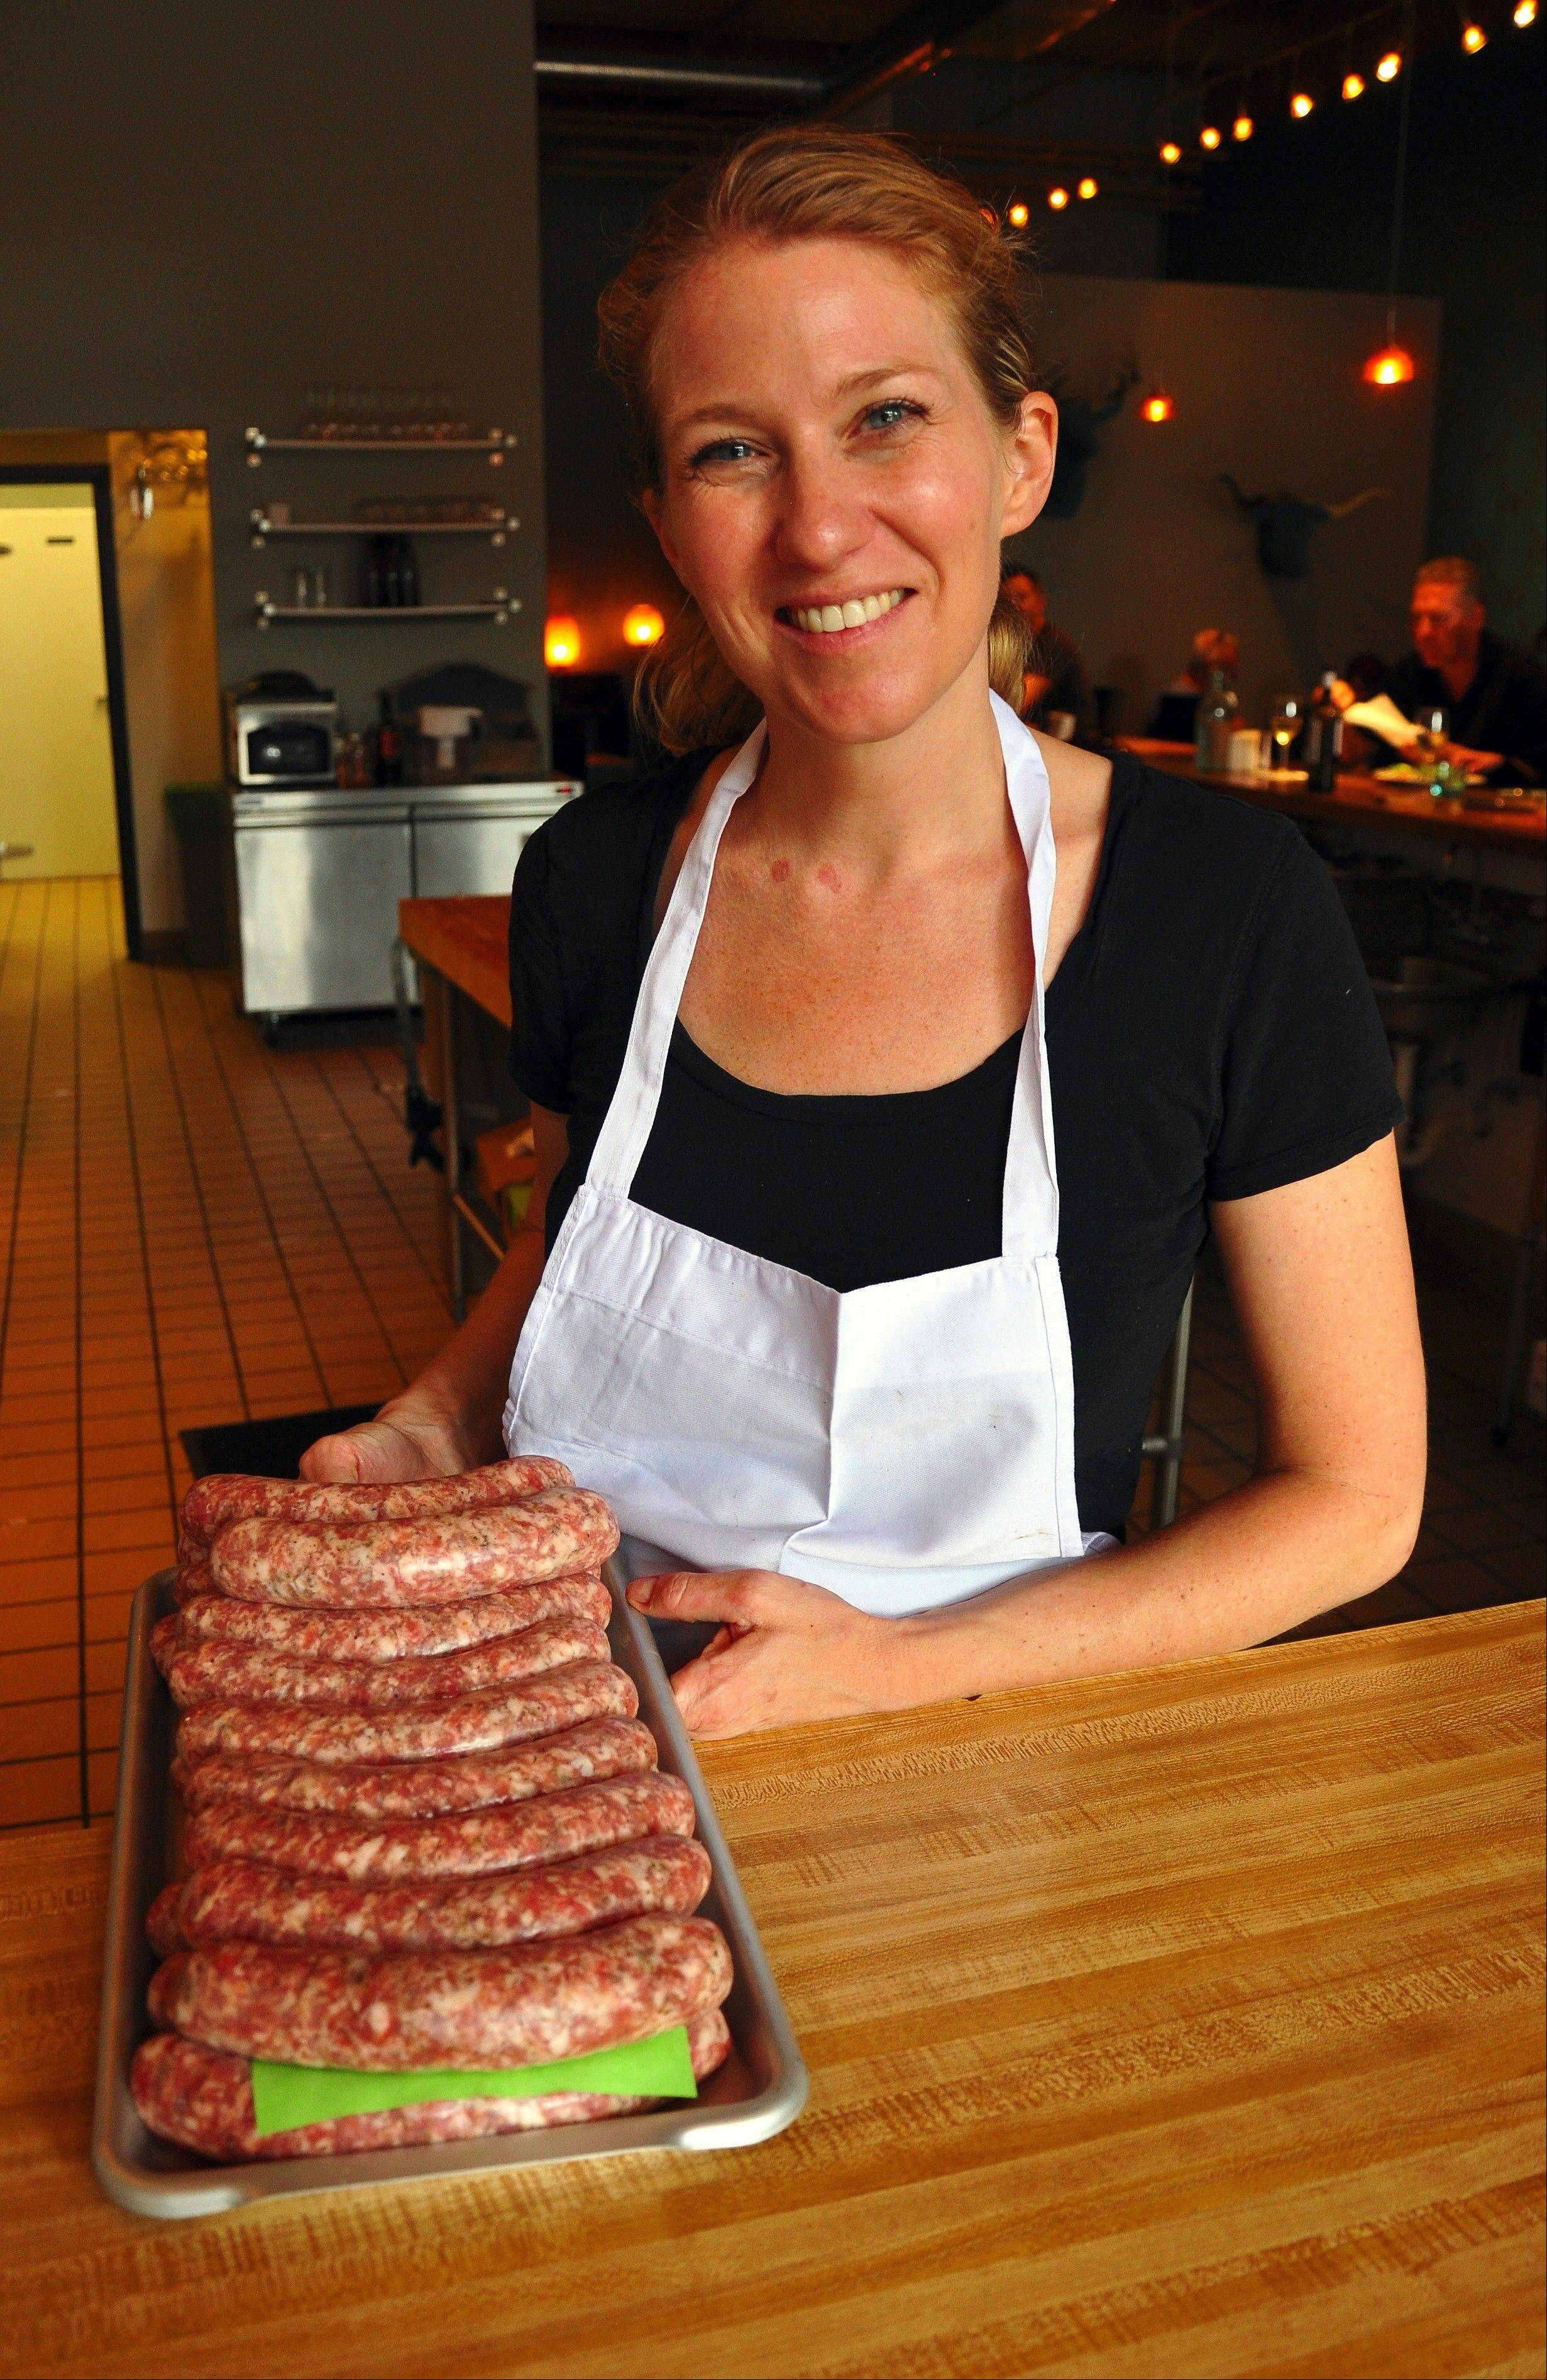 Artisan sausages are one of the items made by chef/owner Karen Bell at Bavette La Boucherie.